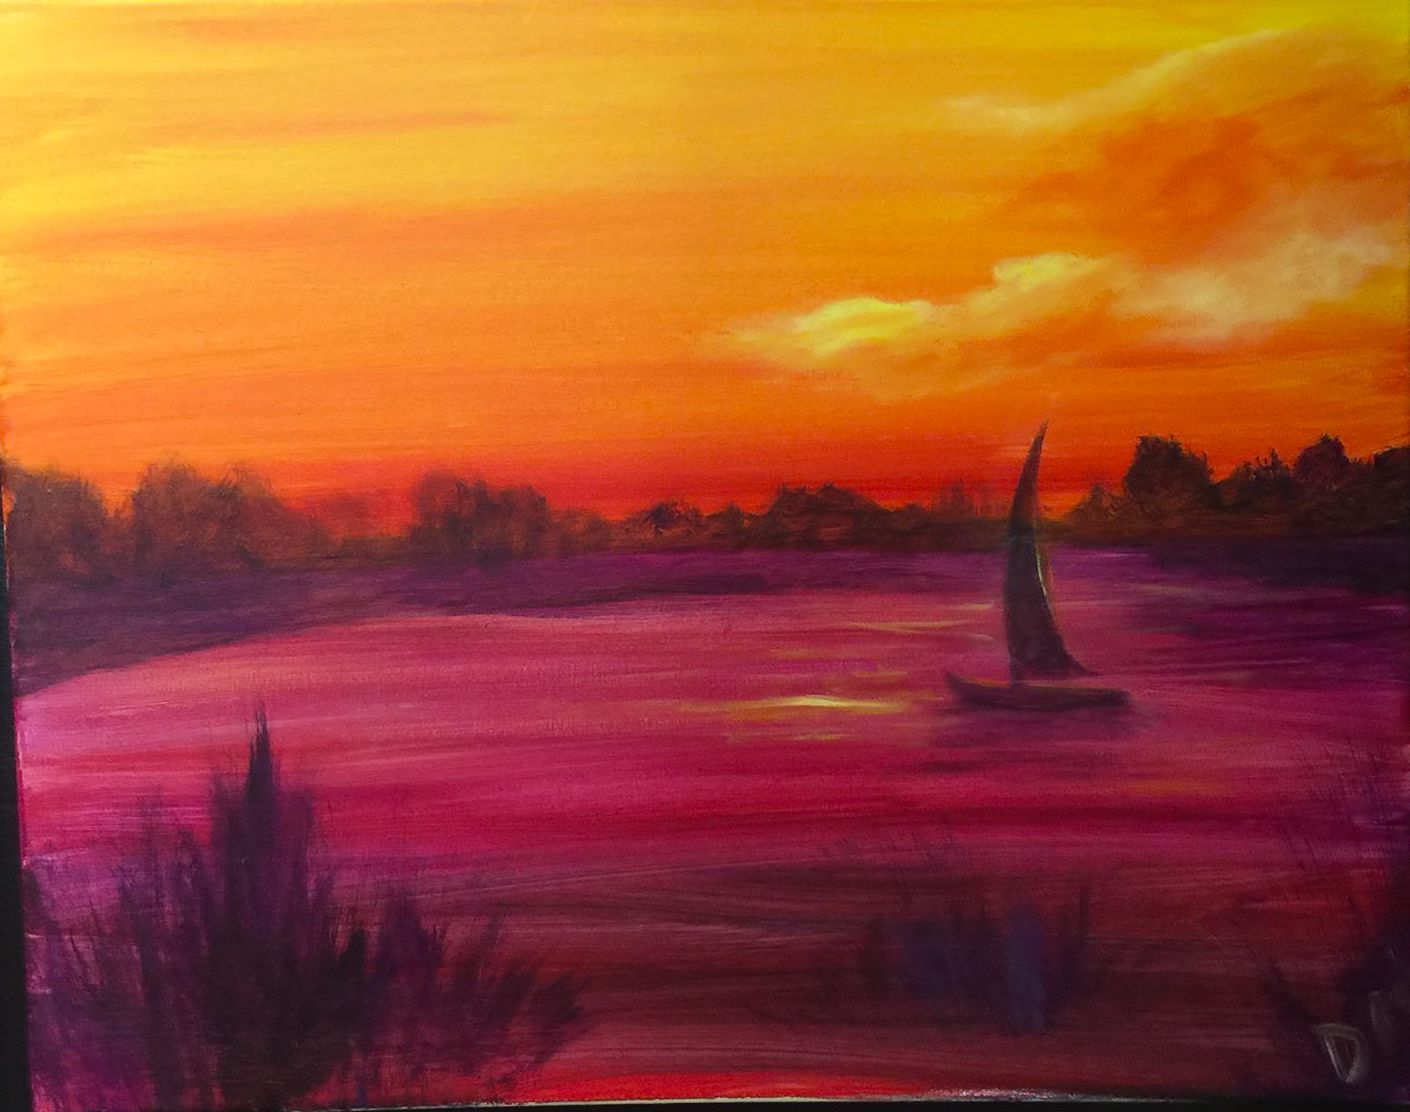 E-10 Sailboat lake orange magenta